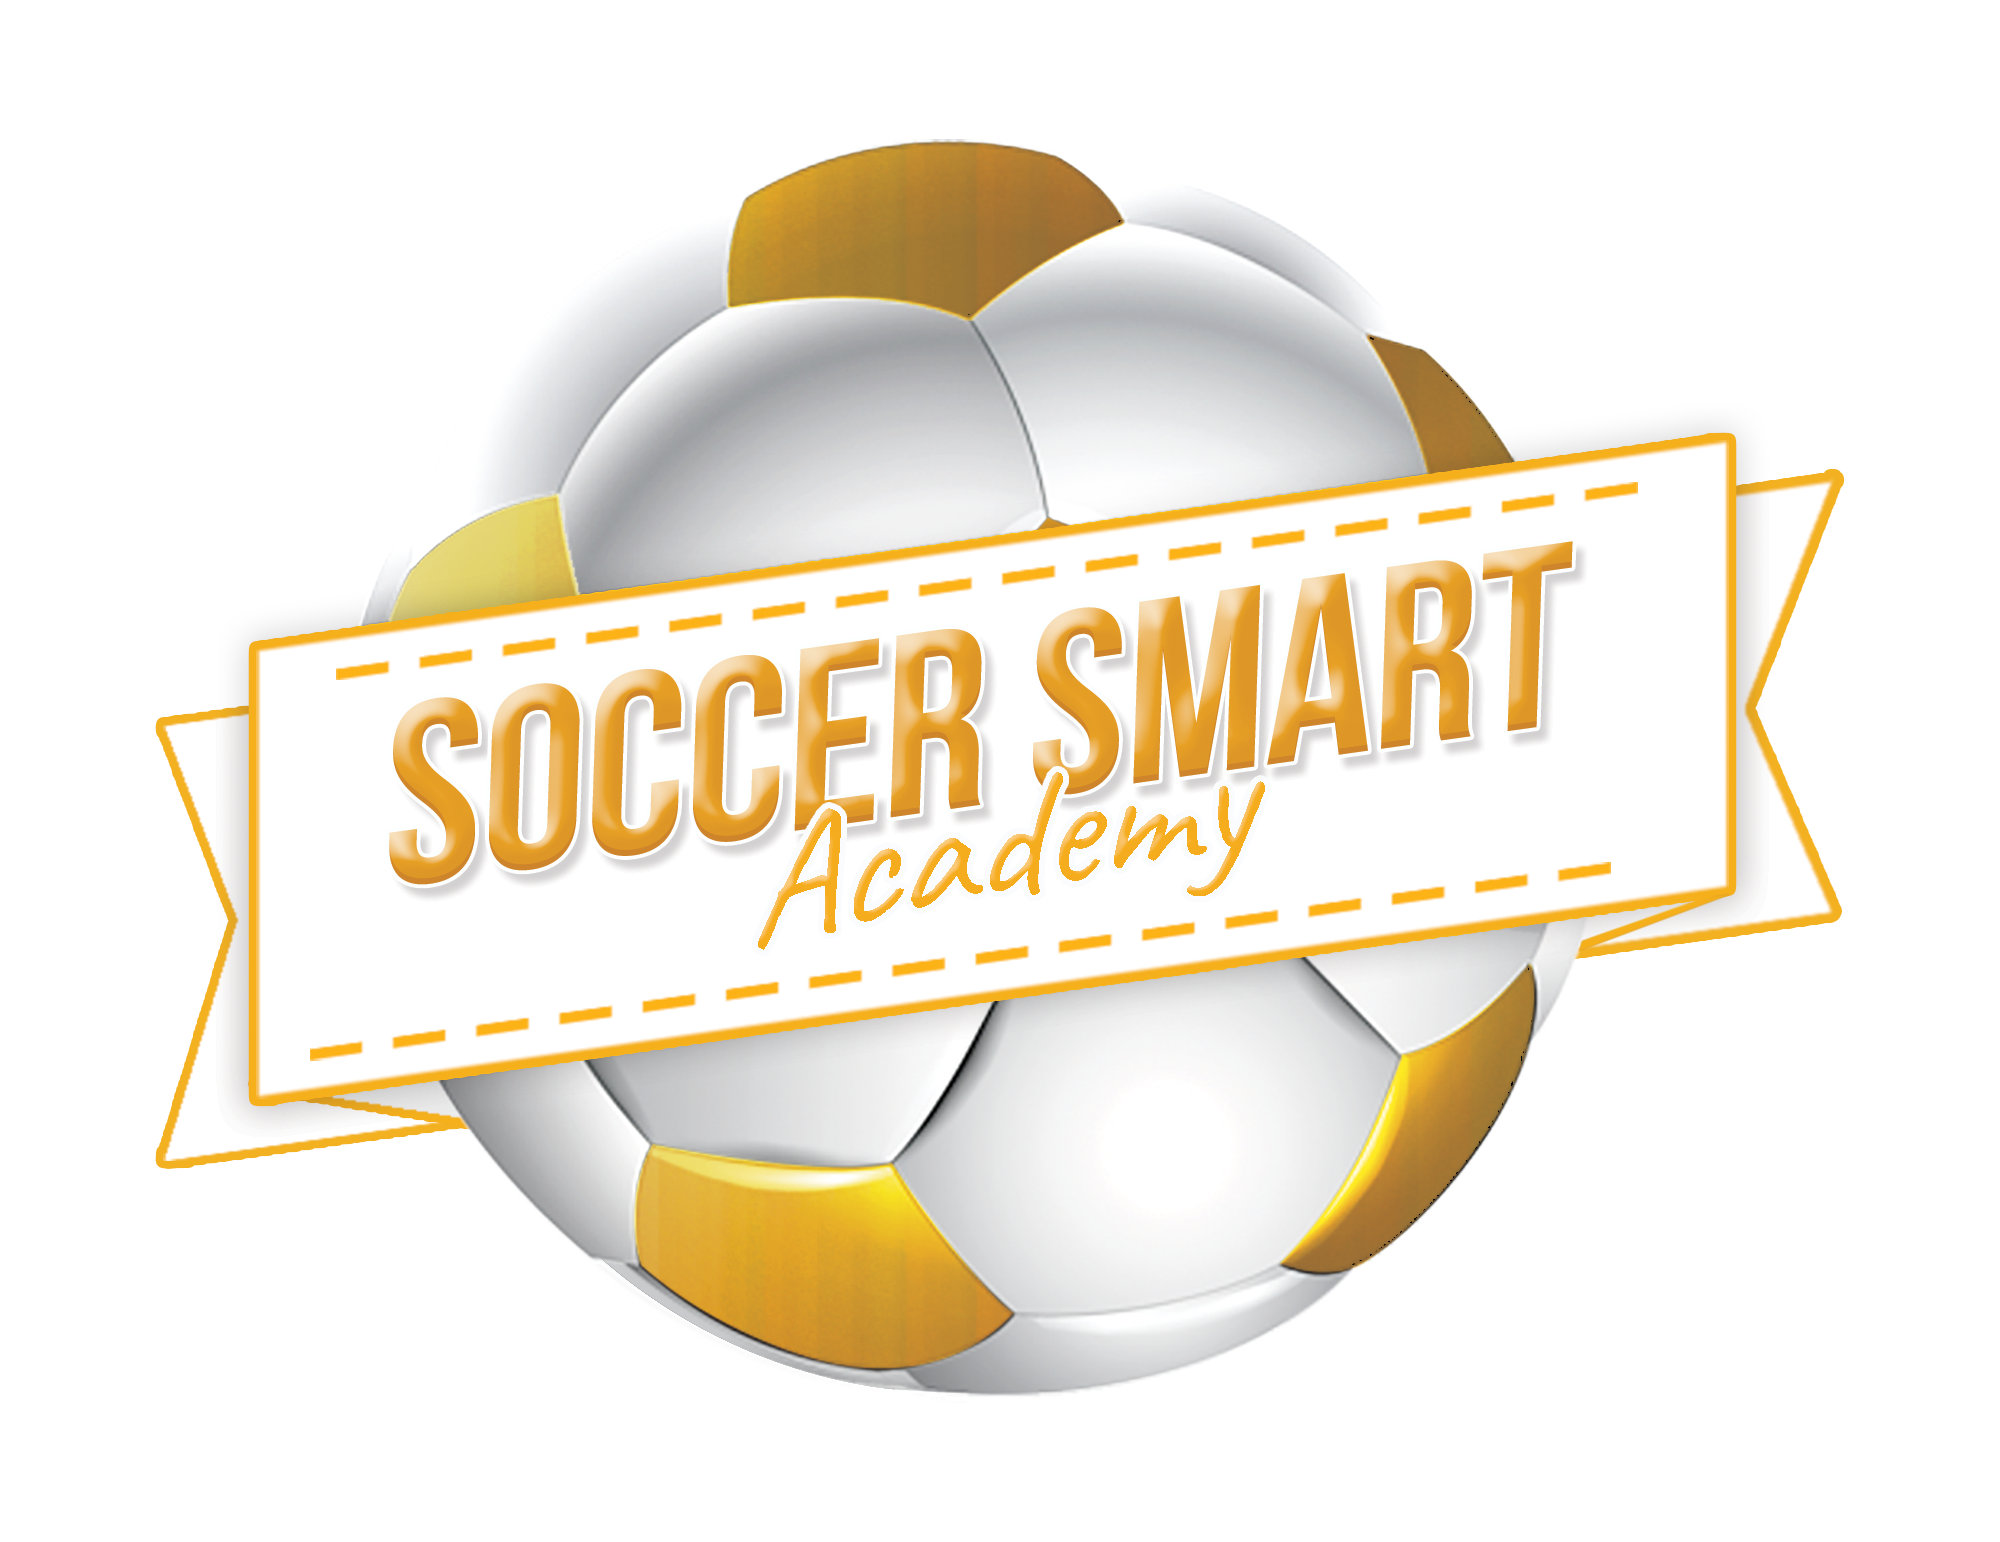 soccer_smart_academy1 (1).png